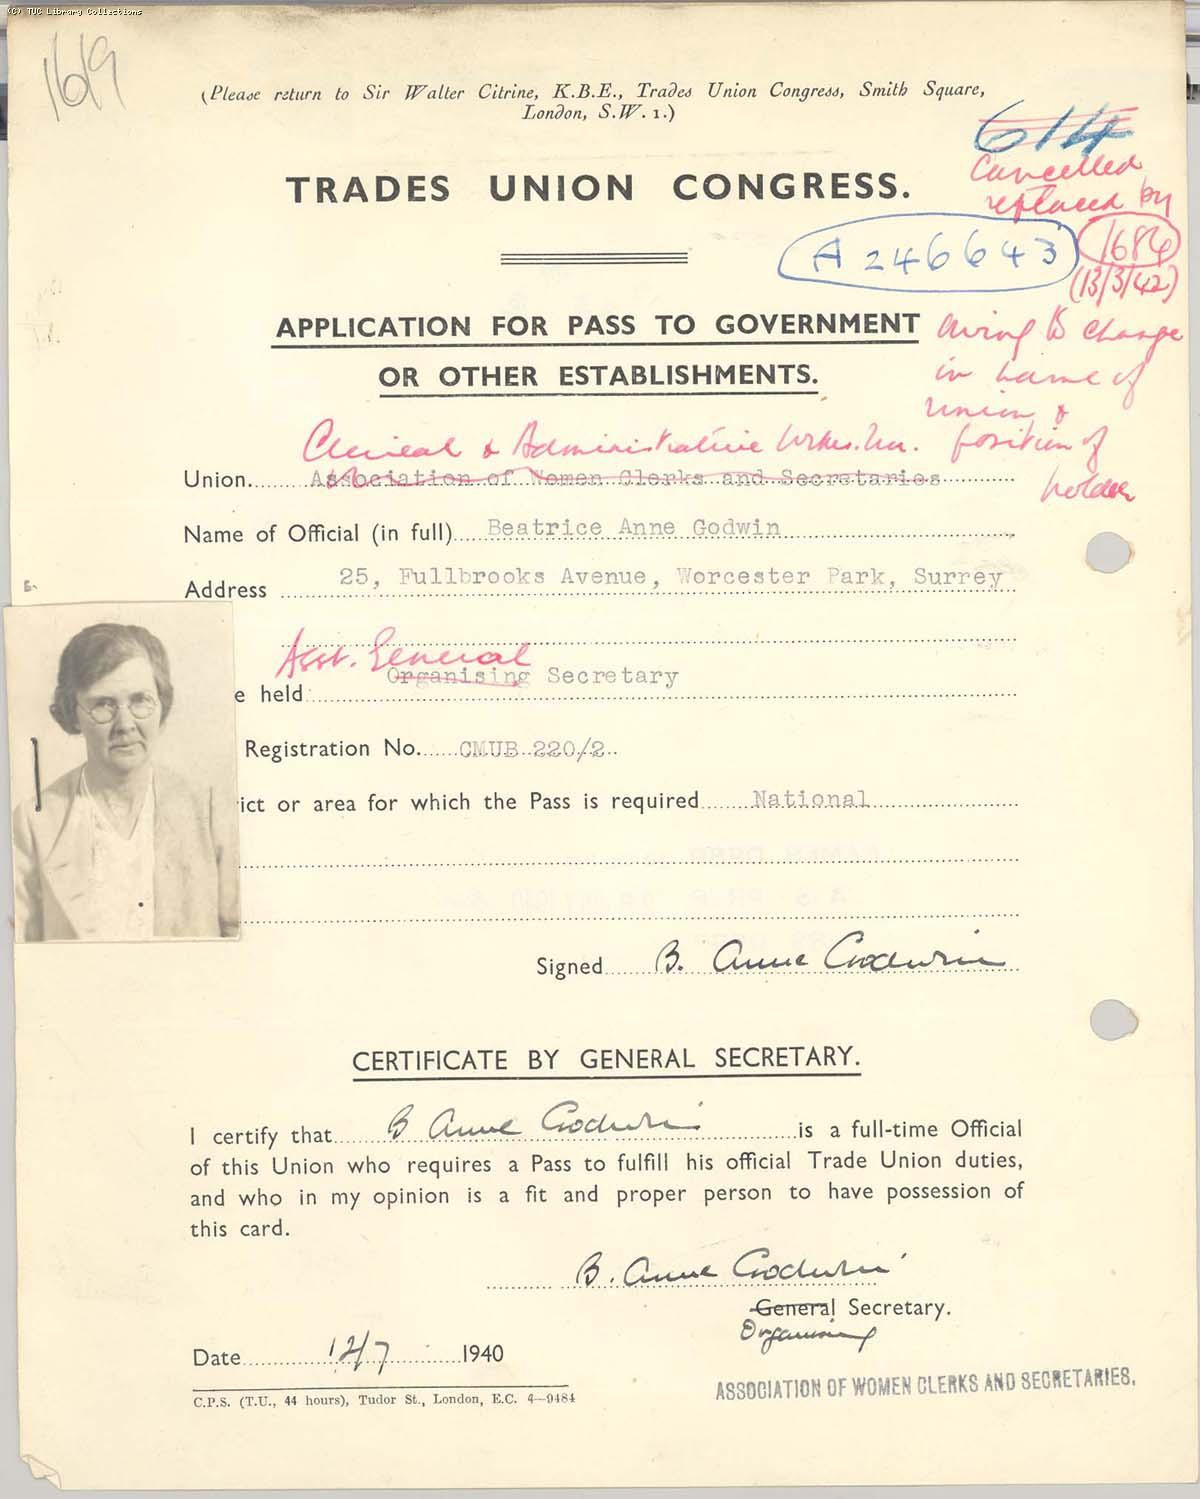 Passes for trade union officials, Ann Godwin